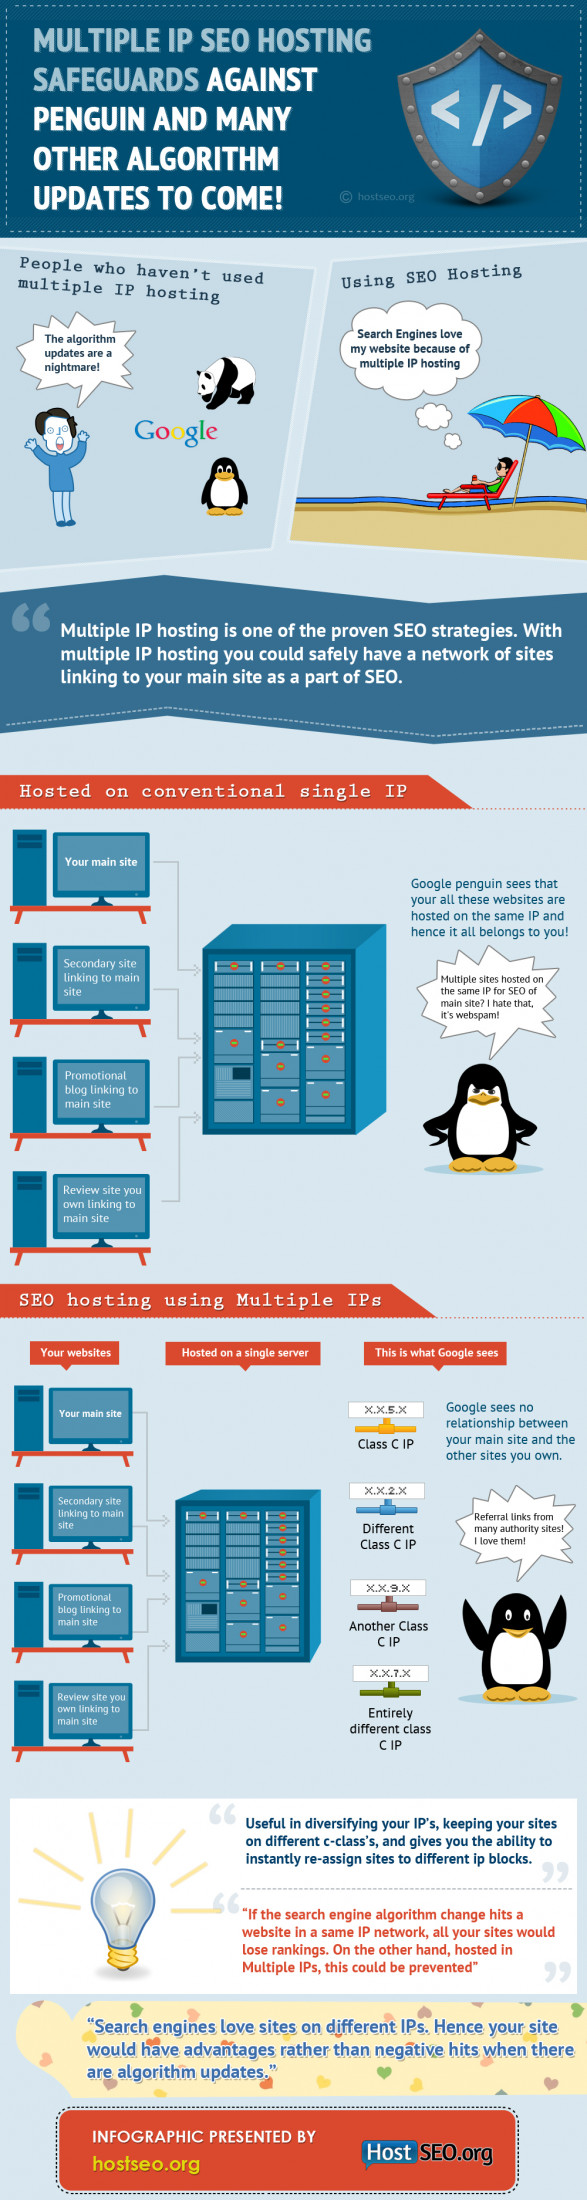 Multiple IP SEO Hosting safeguards against penguin and many other algorithm updates to come!